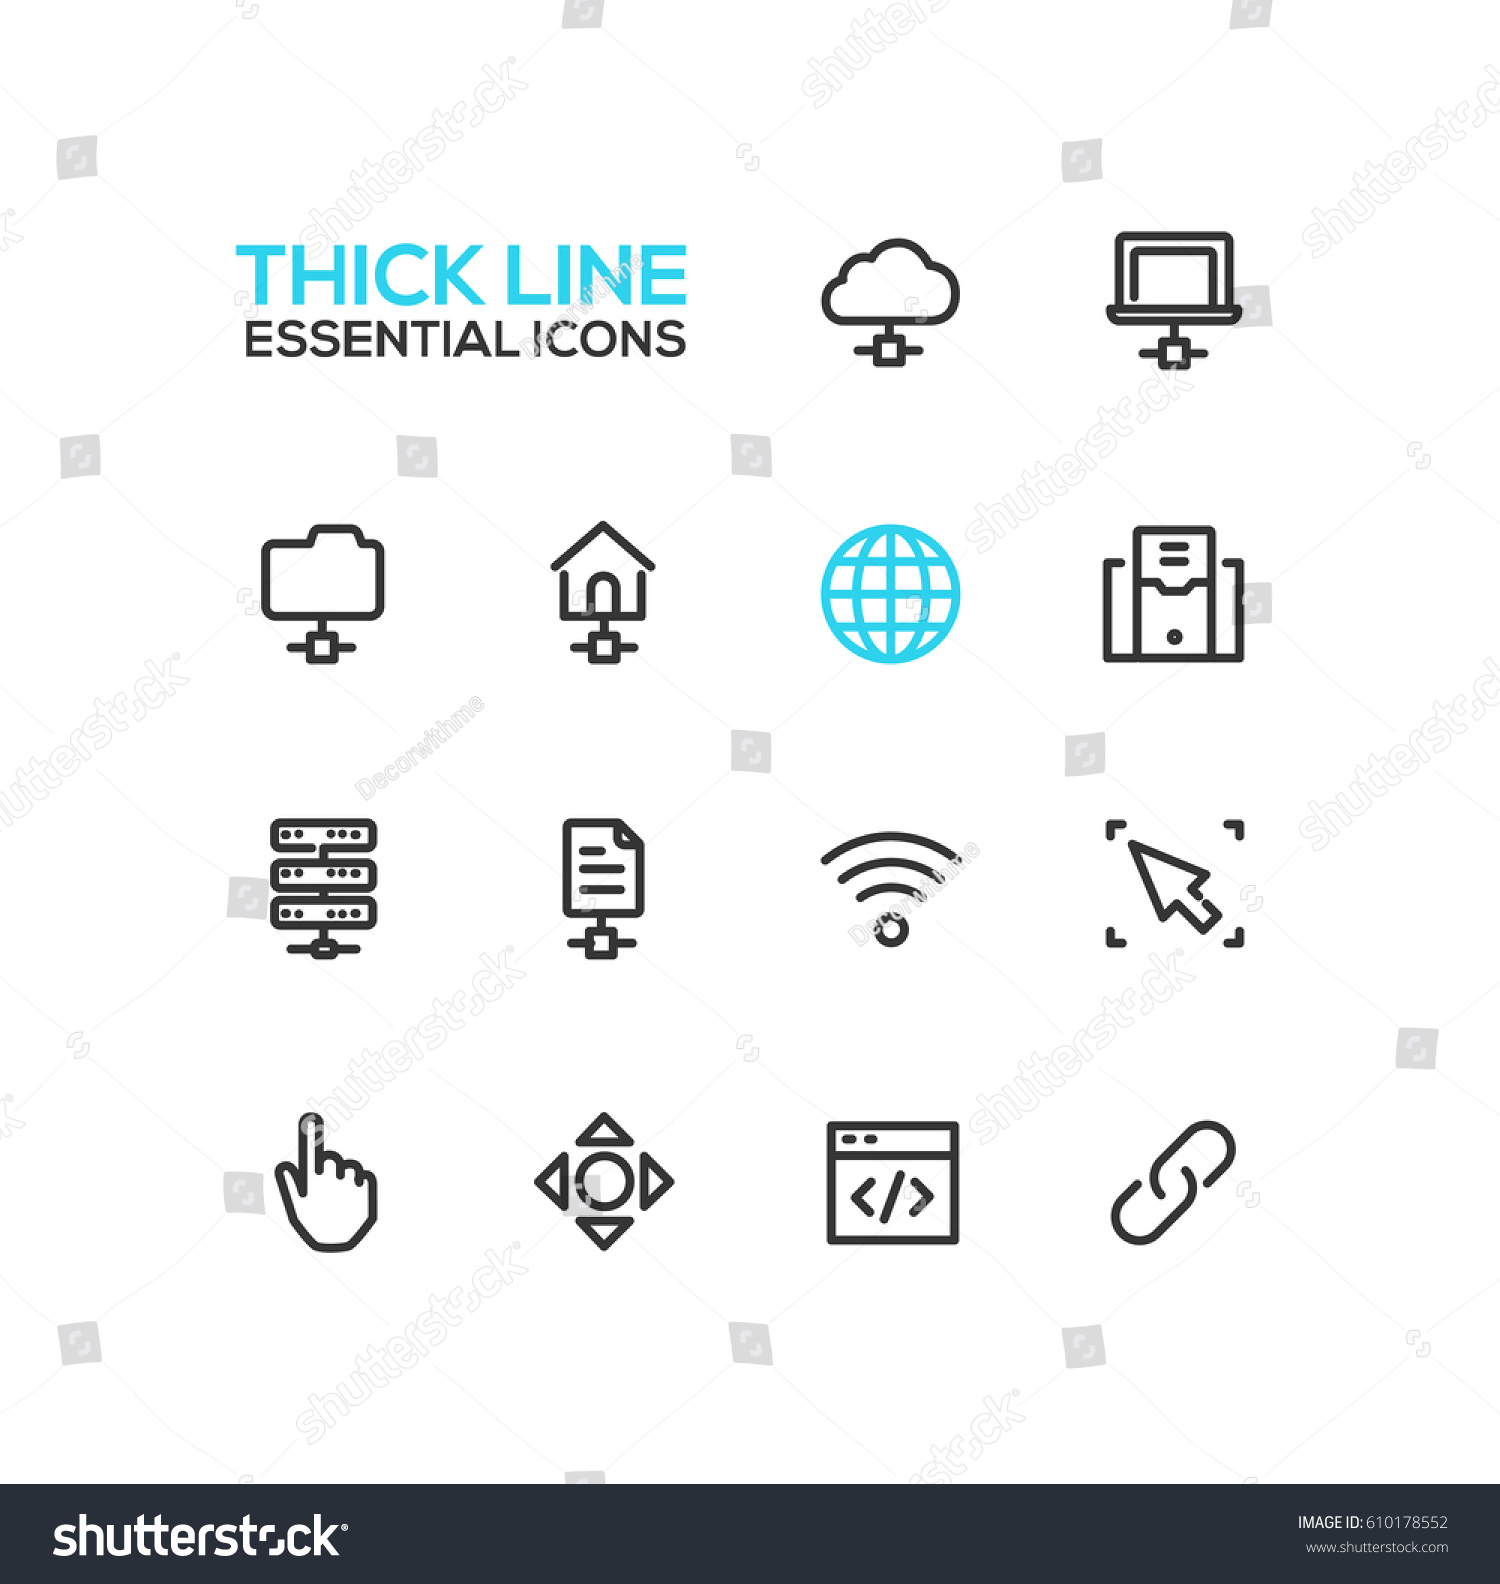 Network Data - modern vector single thick line icons set. Network, cloud,  laptop